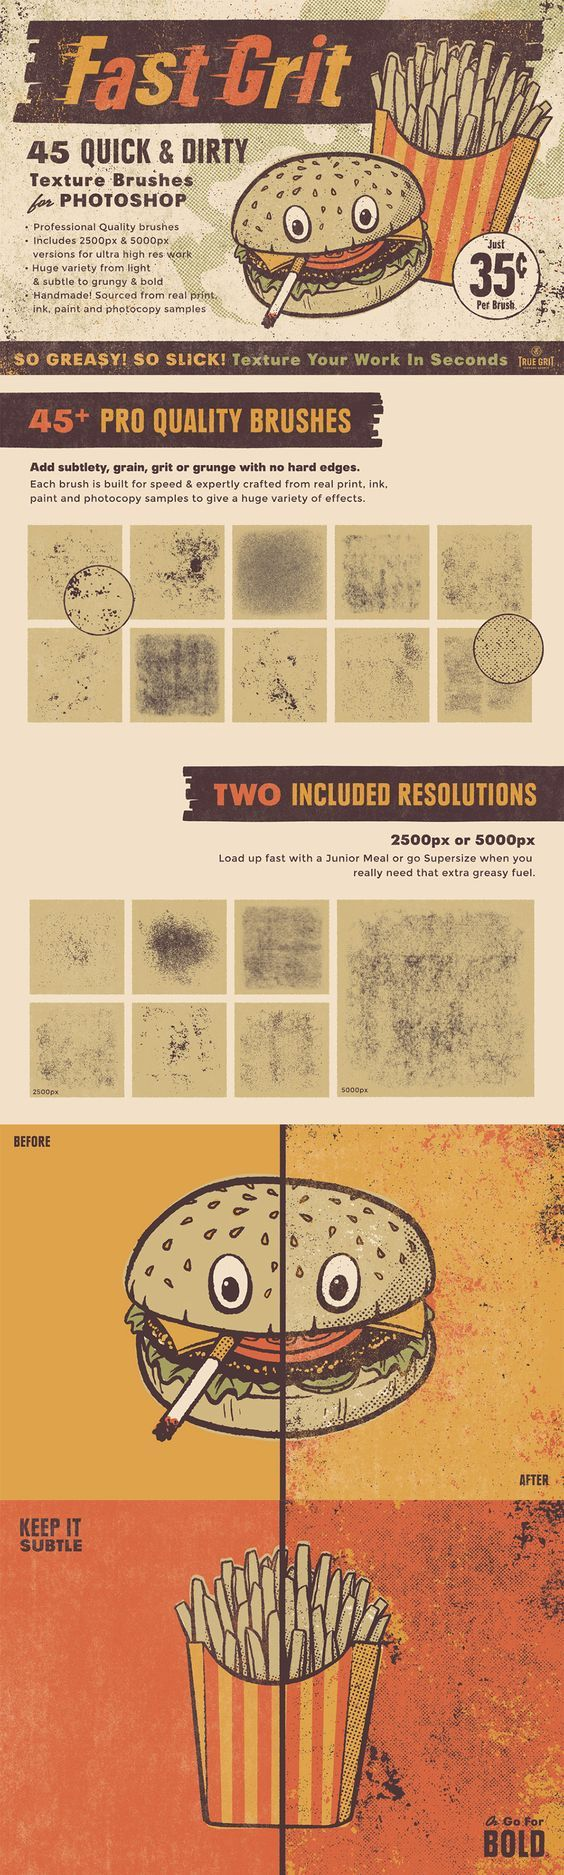 FAST GRIT TEXTURE BRUSHES FOR PHOTOSHOP #Textures #PhotoshopBrushes #PhotoshopTexture #Illustration #GraphicDesign #Distressed #Grunge  #SubtleTexture #Letterpress #RetroEffects #VintageEffects #PhotocopyTexture #Distressing #ScreenprintTexture #SilkscreenTexture #VectorTexture #PhotoshopTutorial #TextureTutorial #GigPosters #MusicDesign #EditorialIllustration #ComicIllustrators #ComicArtists #Comics #Posters